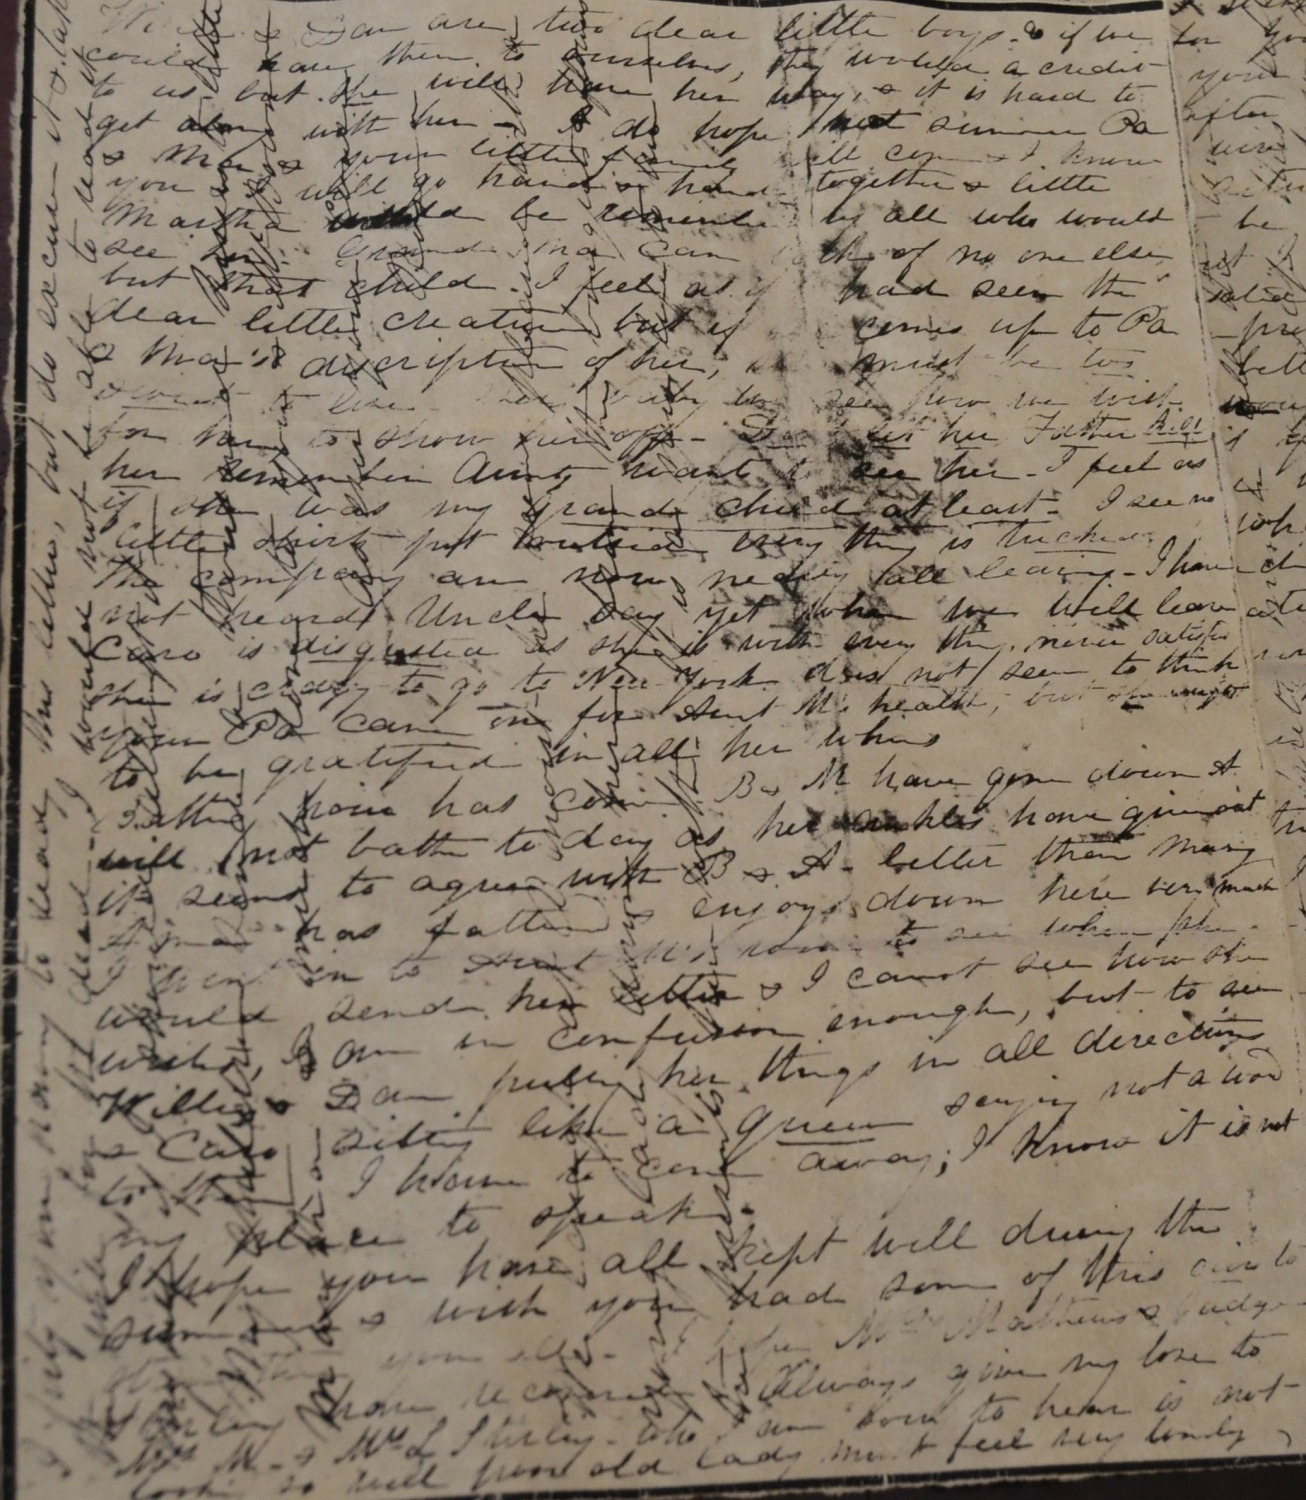 Rosedown Plantation Notes in Butler's Pantry, St. Francisville, LA